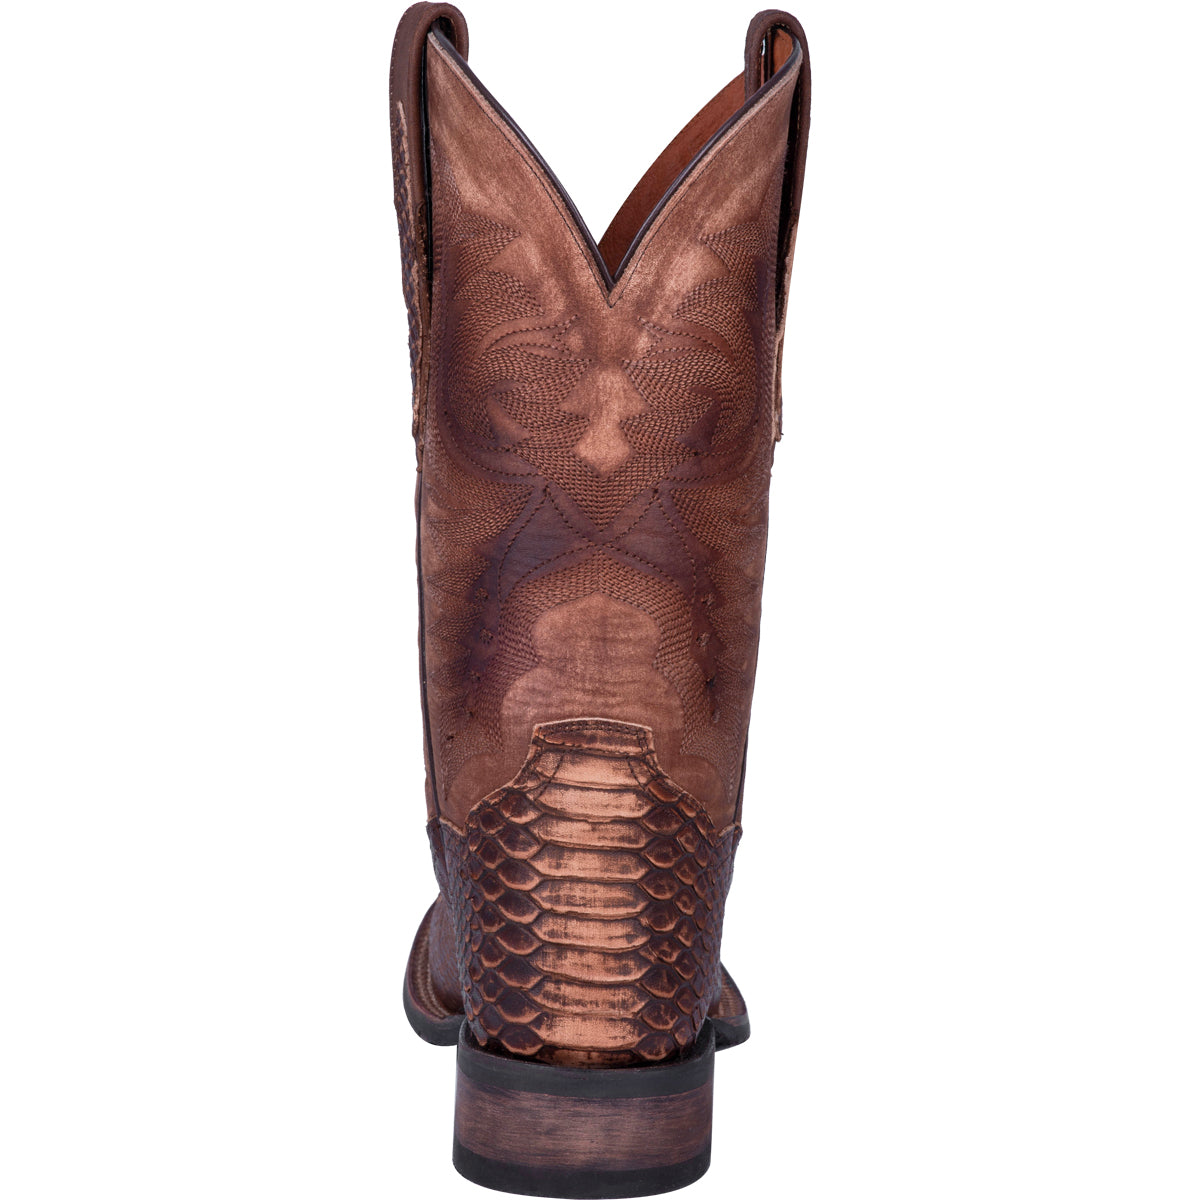 KA LEATHER BOOT 12134314475562